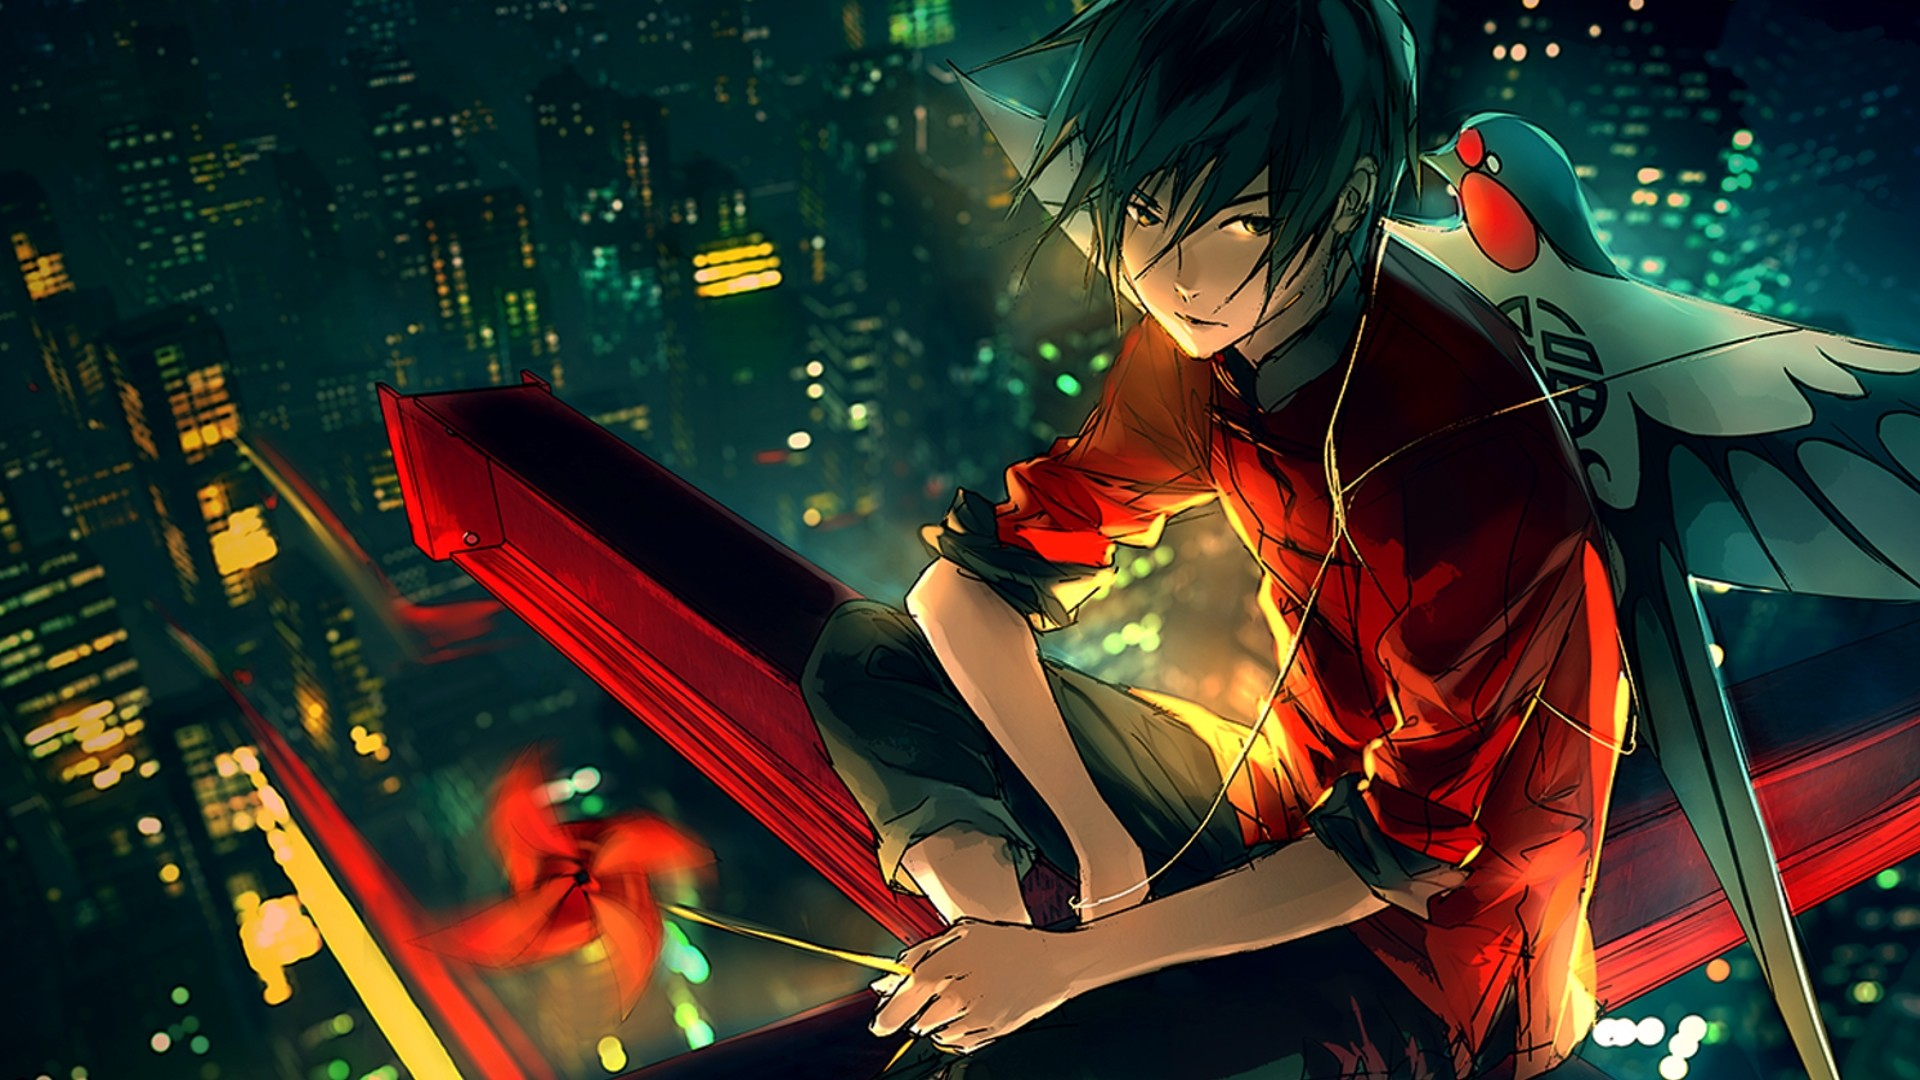 Anime Boy Wallpapers 28 Images Wallpaperboat